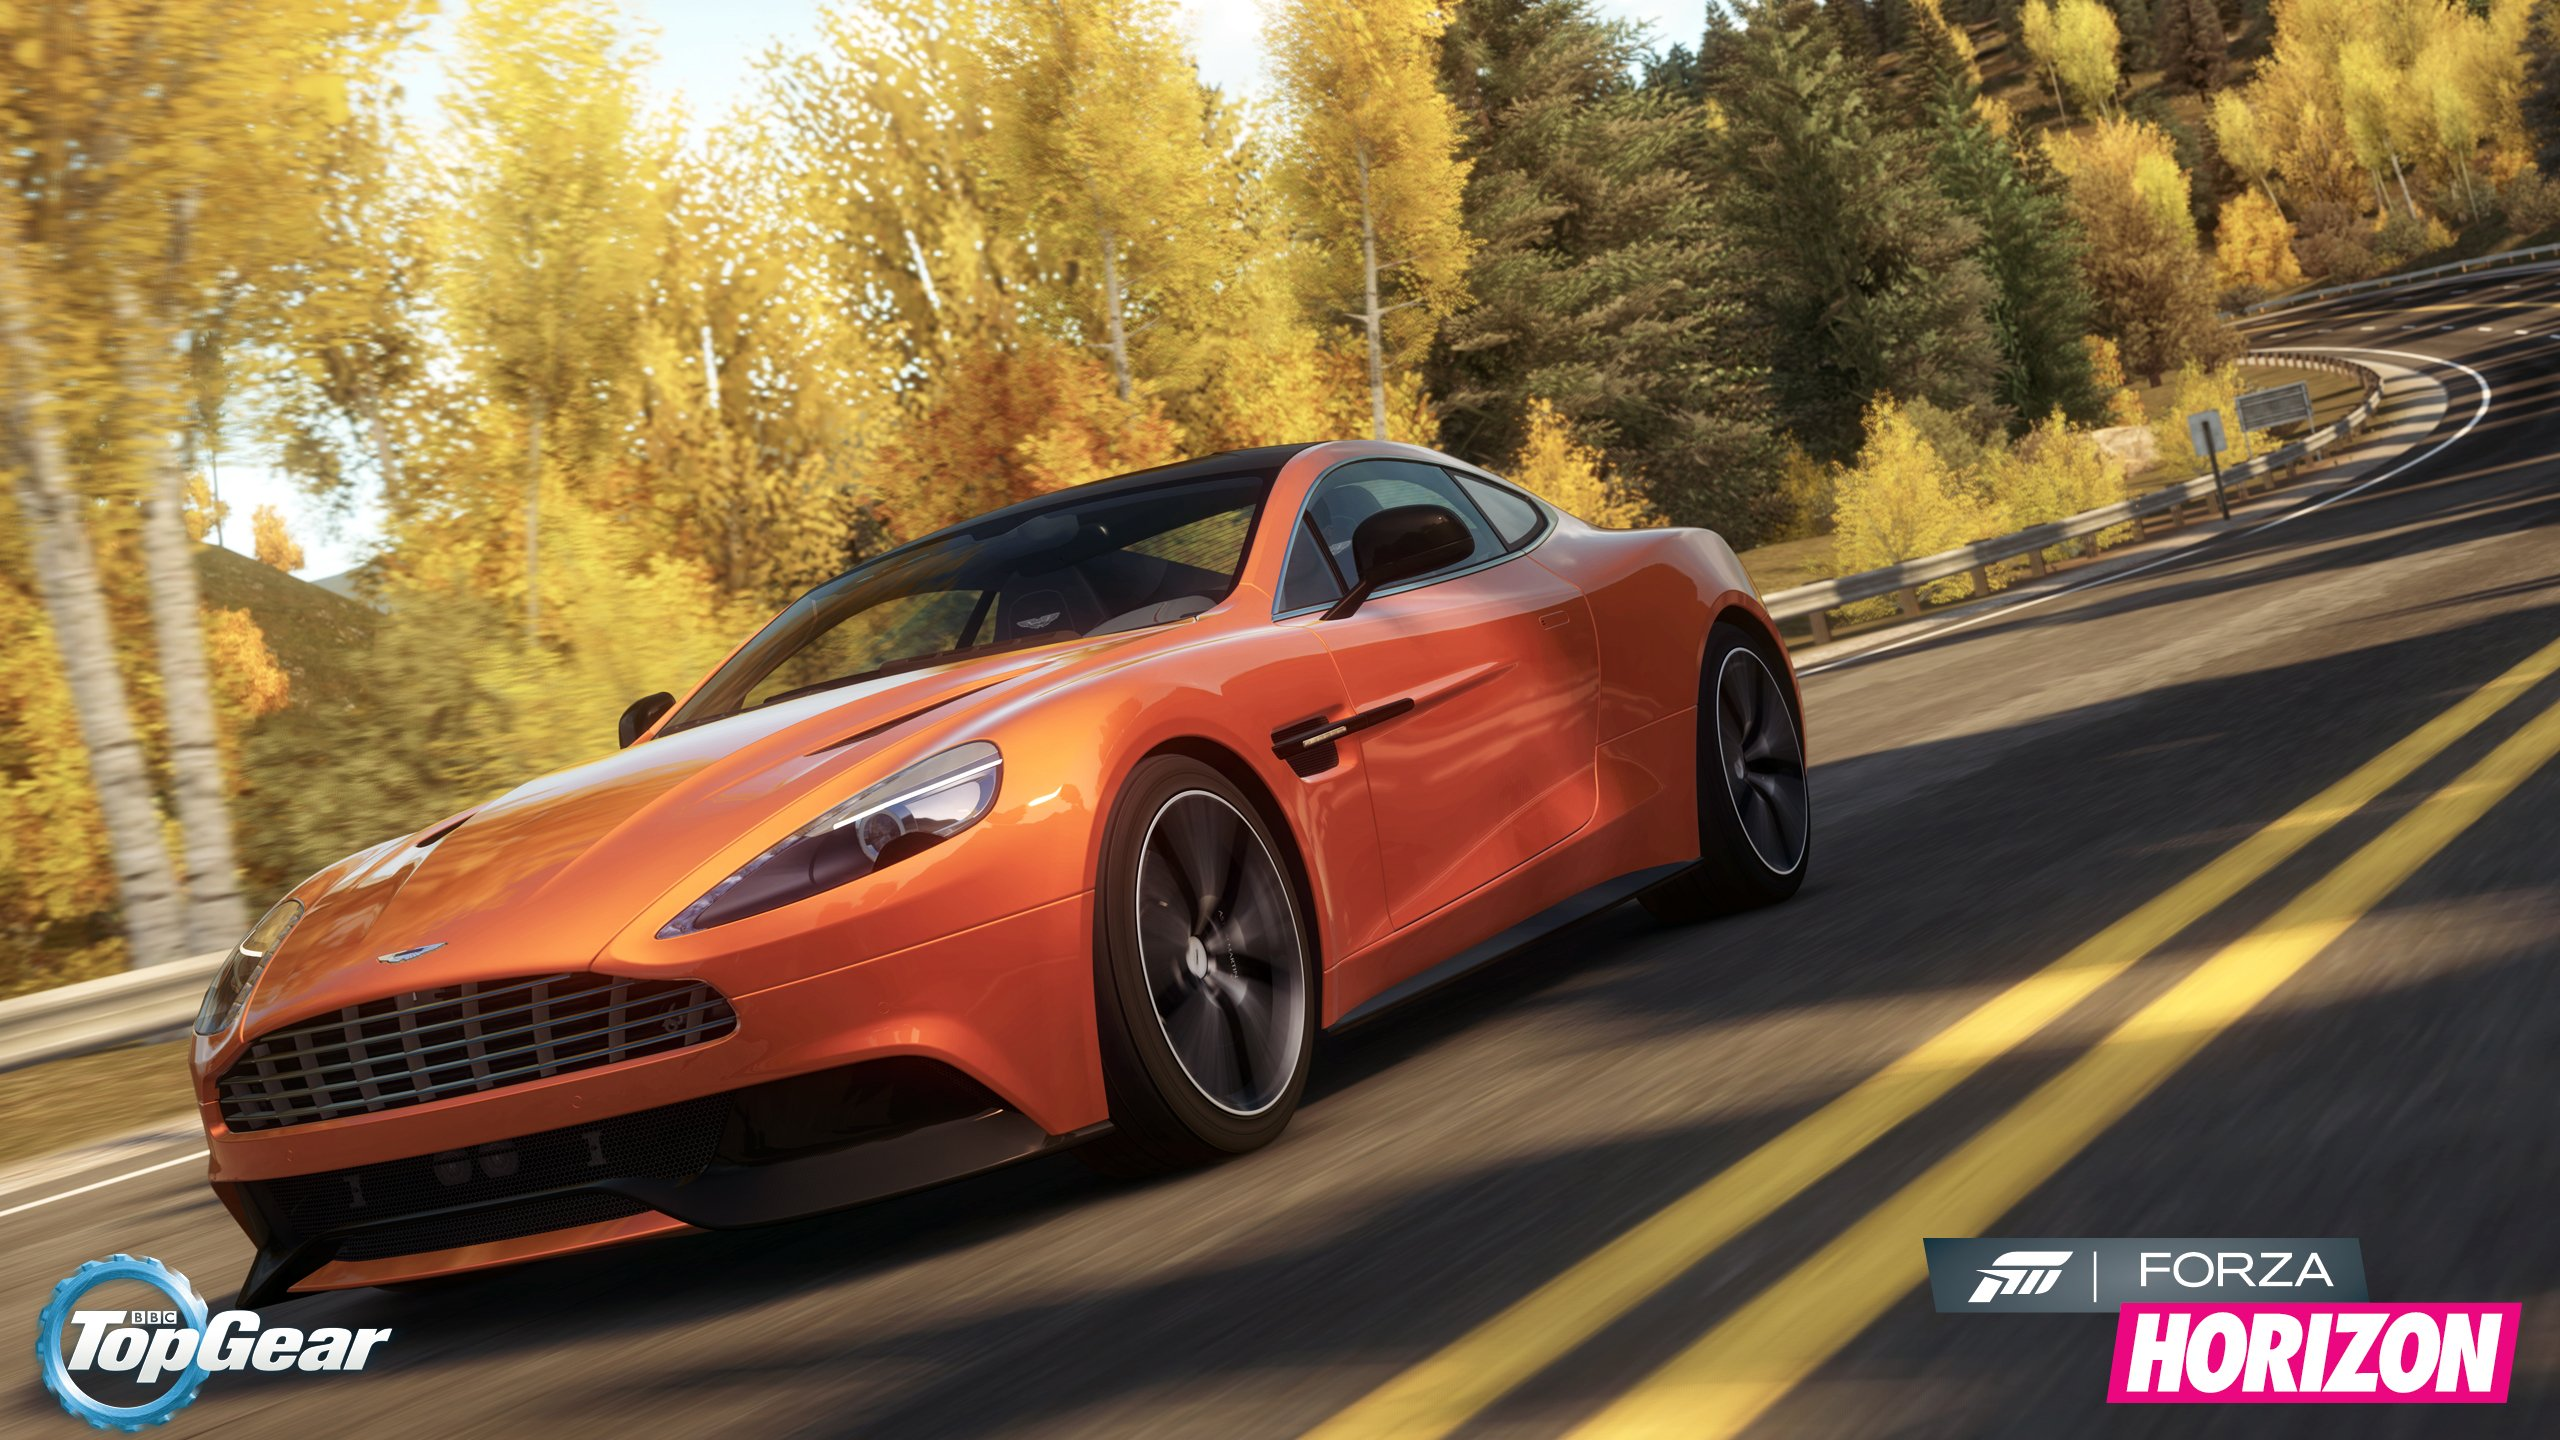 Forza Horizon April Top Gear Car Pack Arriving Tuesday